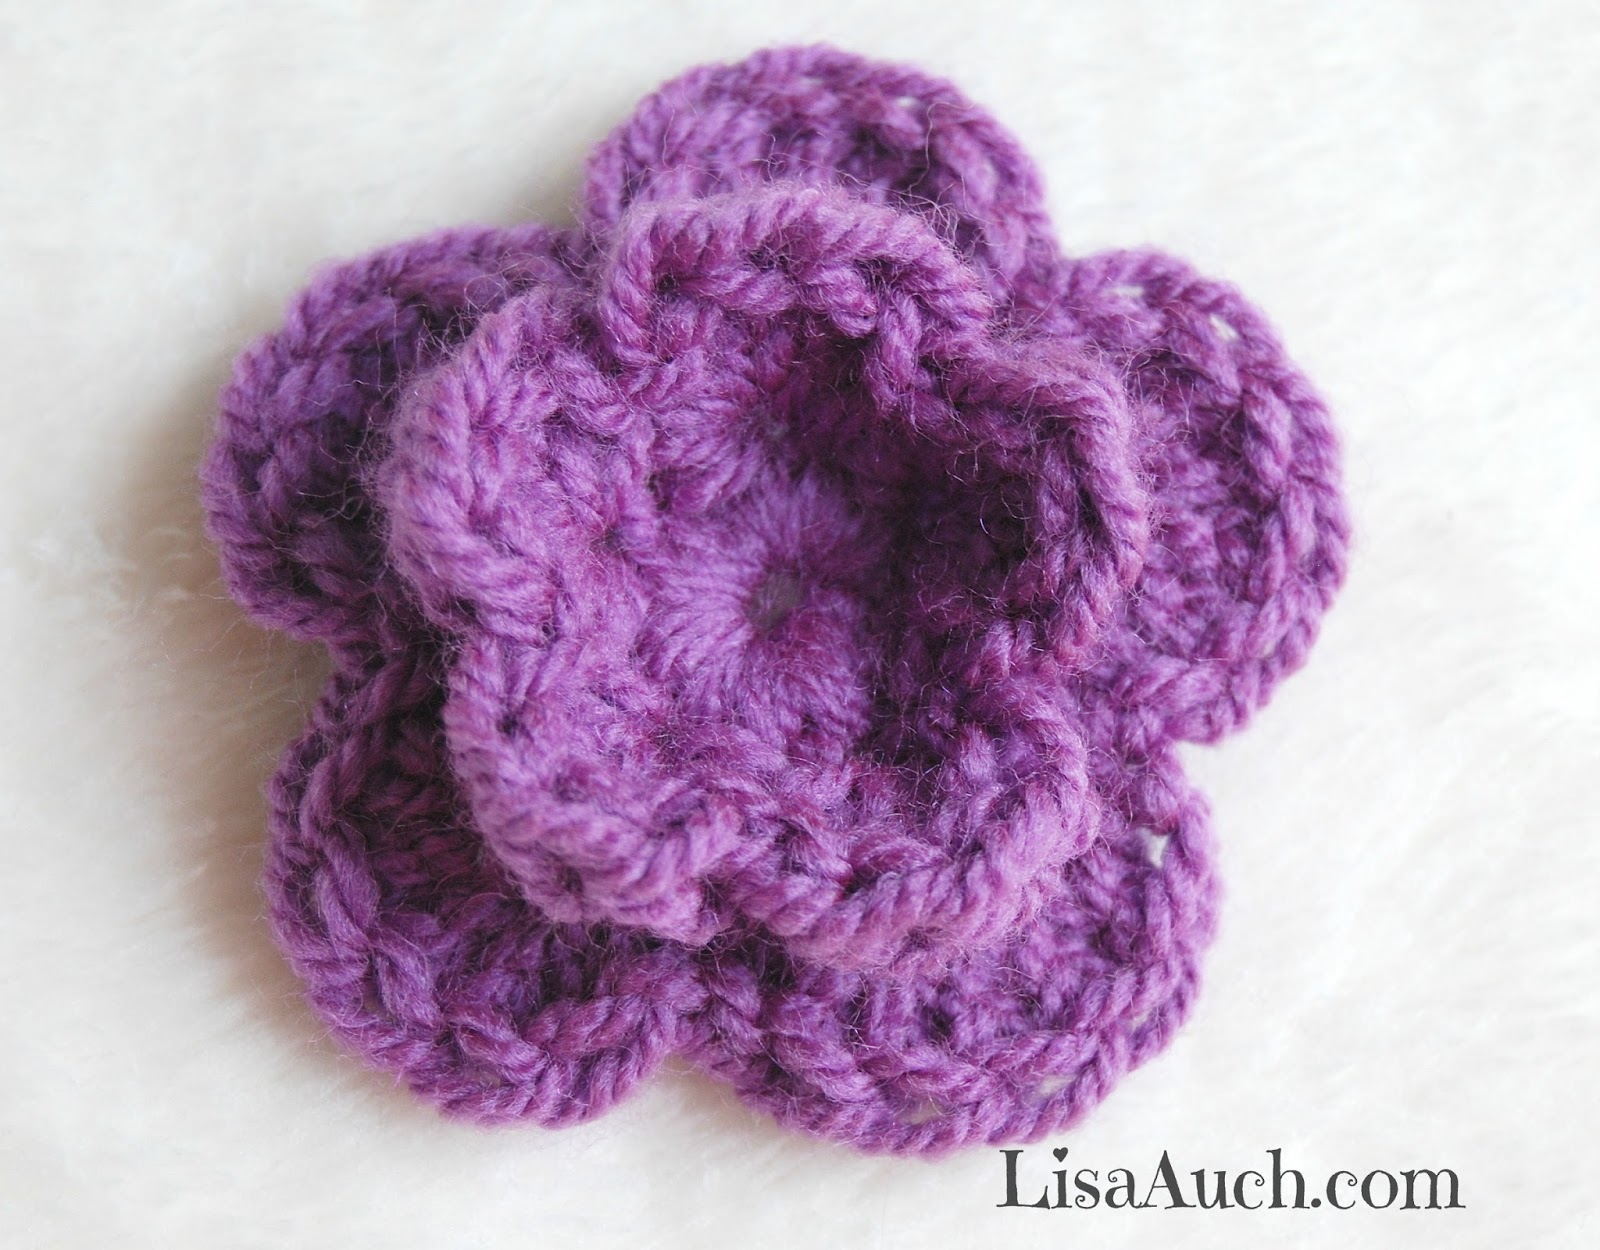 Simple Crochet Flower Free Pattern : How To Crochet a Small Double Layer 3d Flower in 8 Easy ...